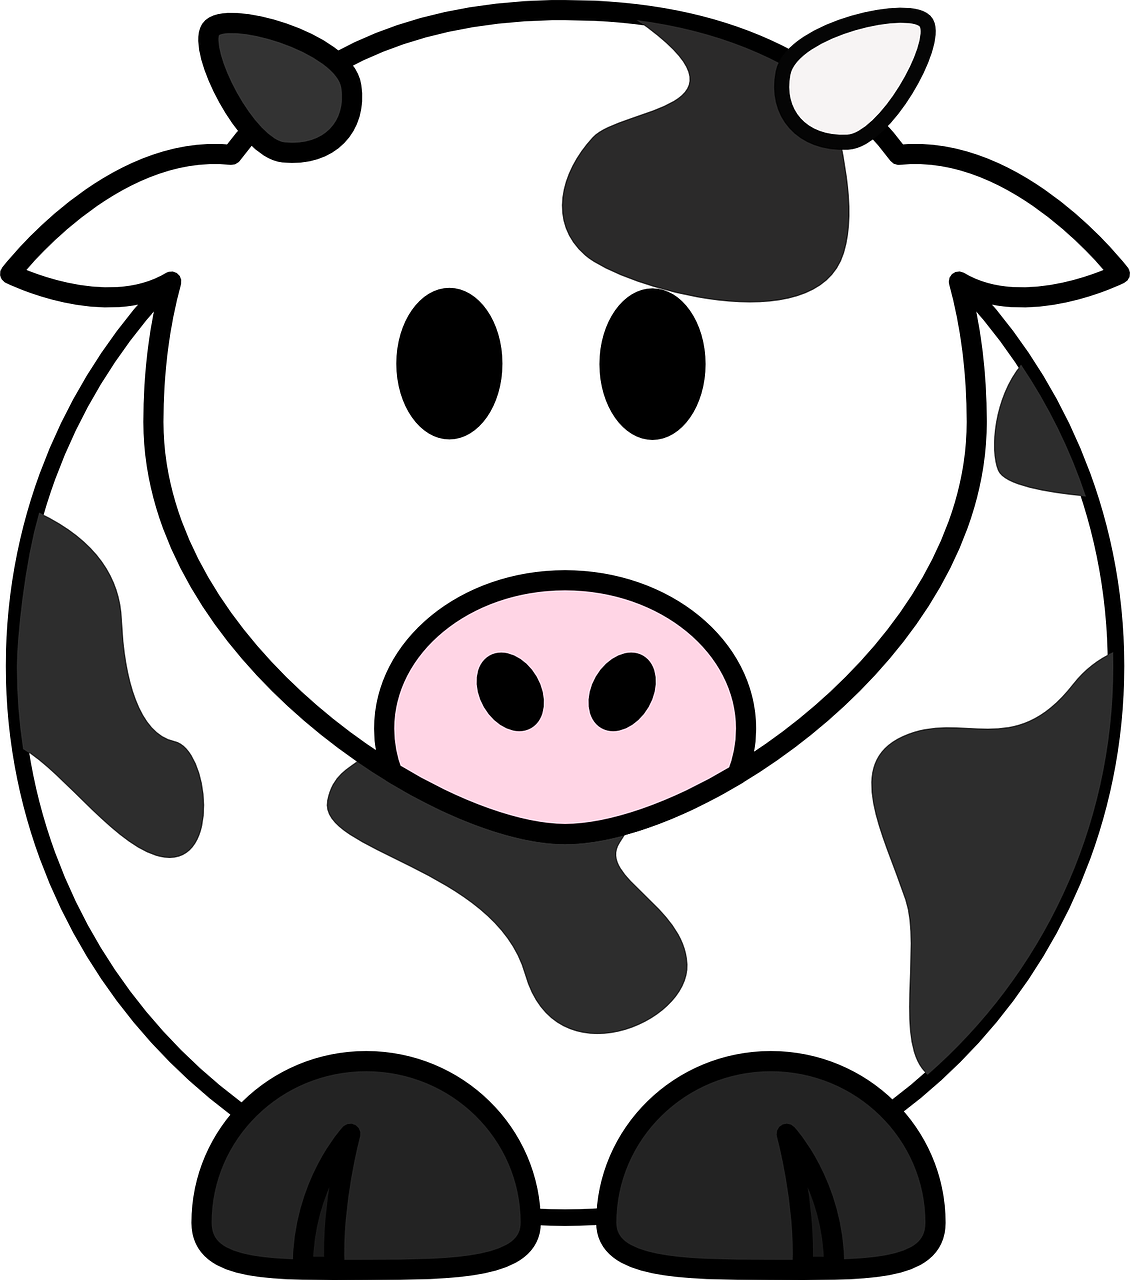 picture royalty free library Free image on pixabay. Milk black and white clipart